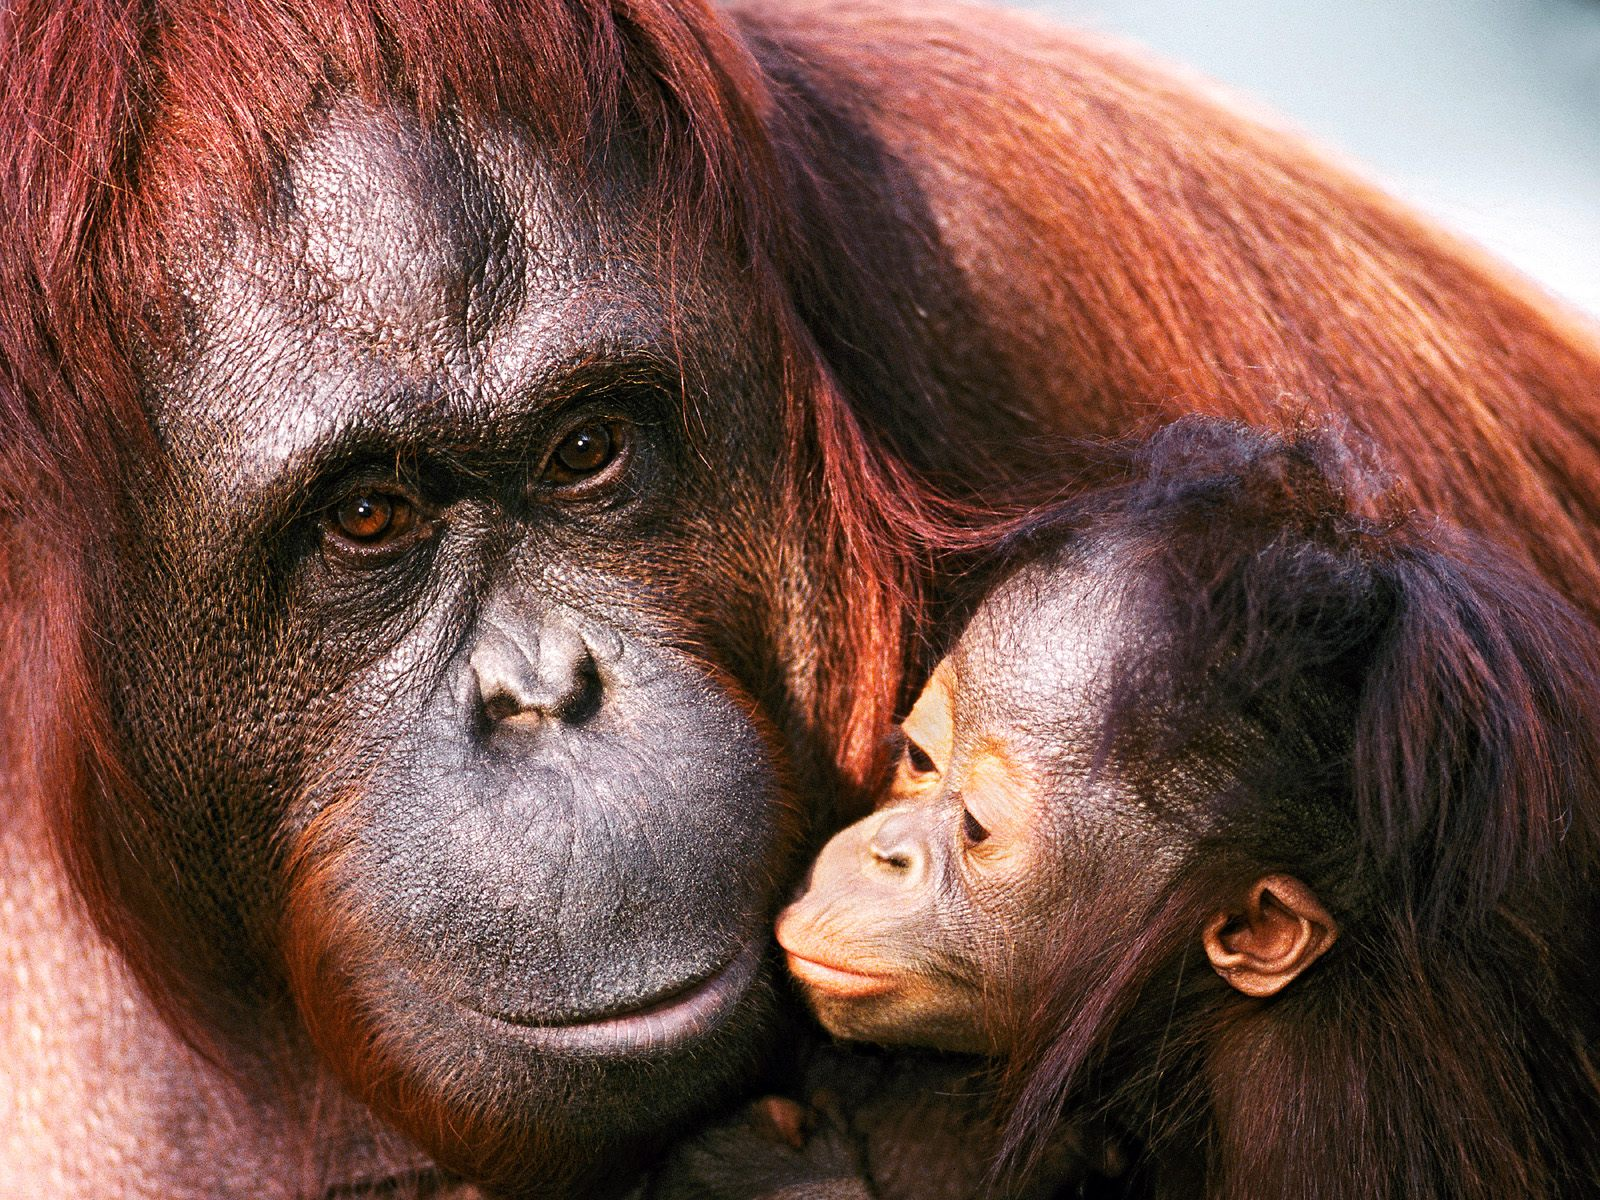 female-sumatran-orangutan-and-baby-pictures.jpg